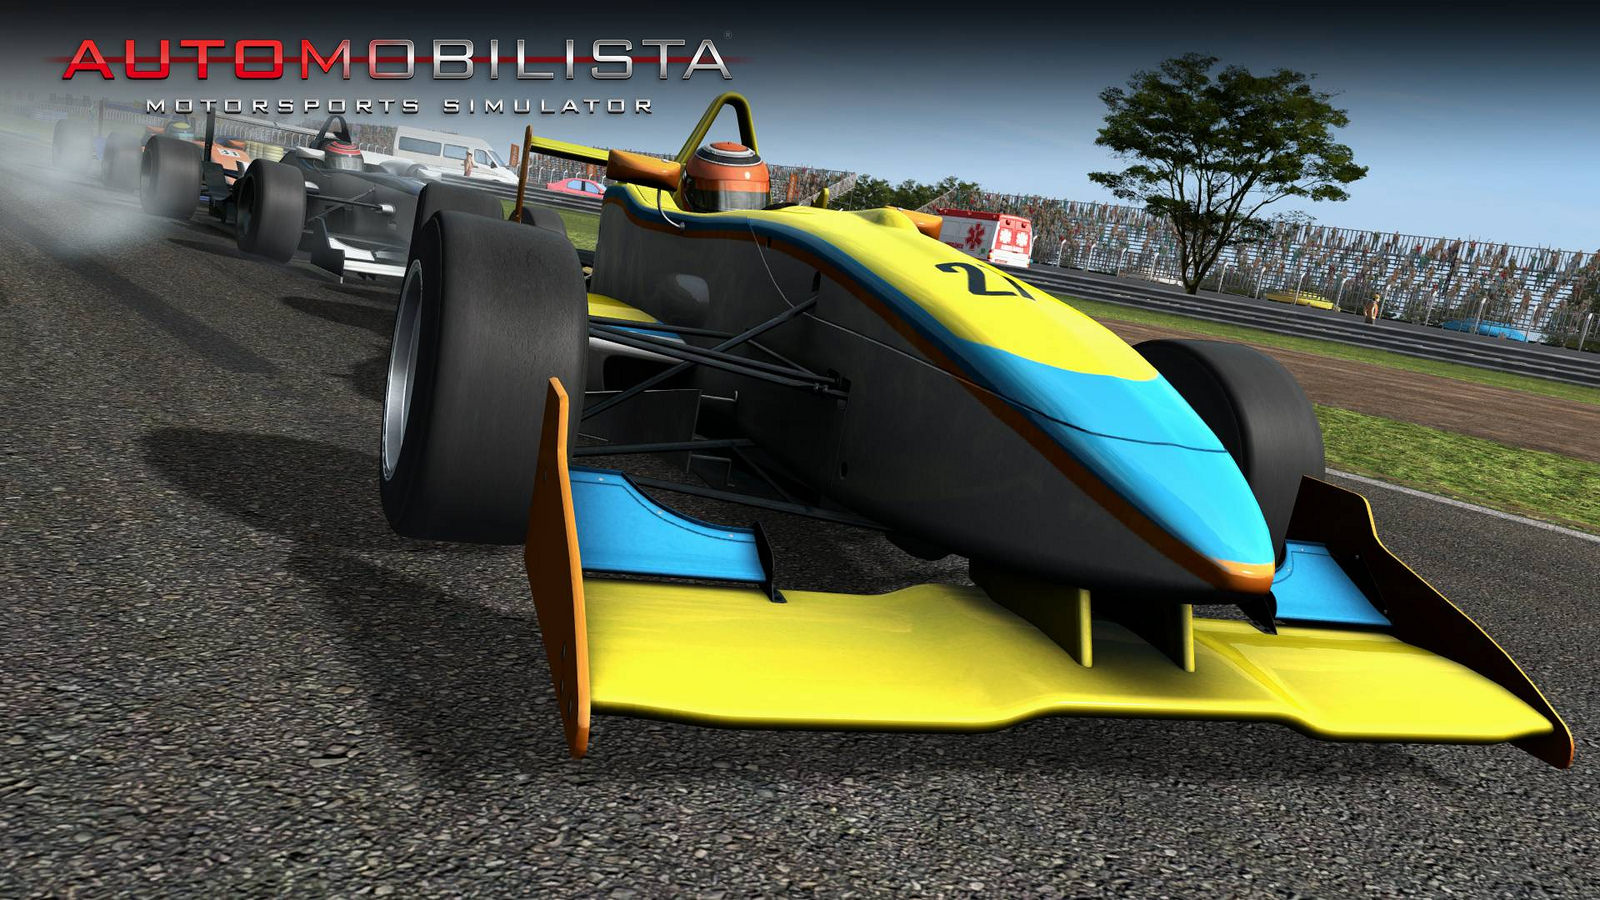 Automobilista Motorsports PC screenshot showing single seater